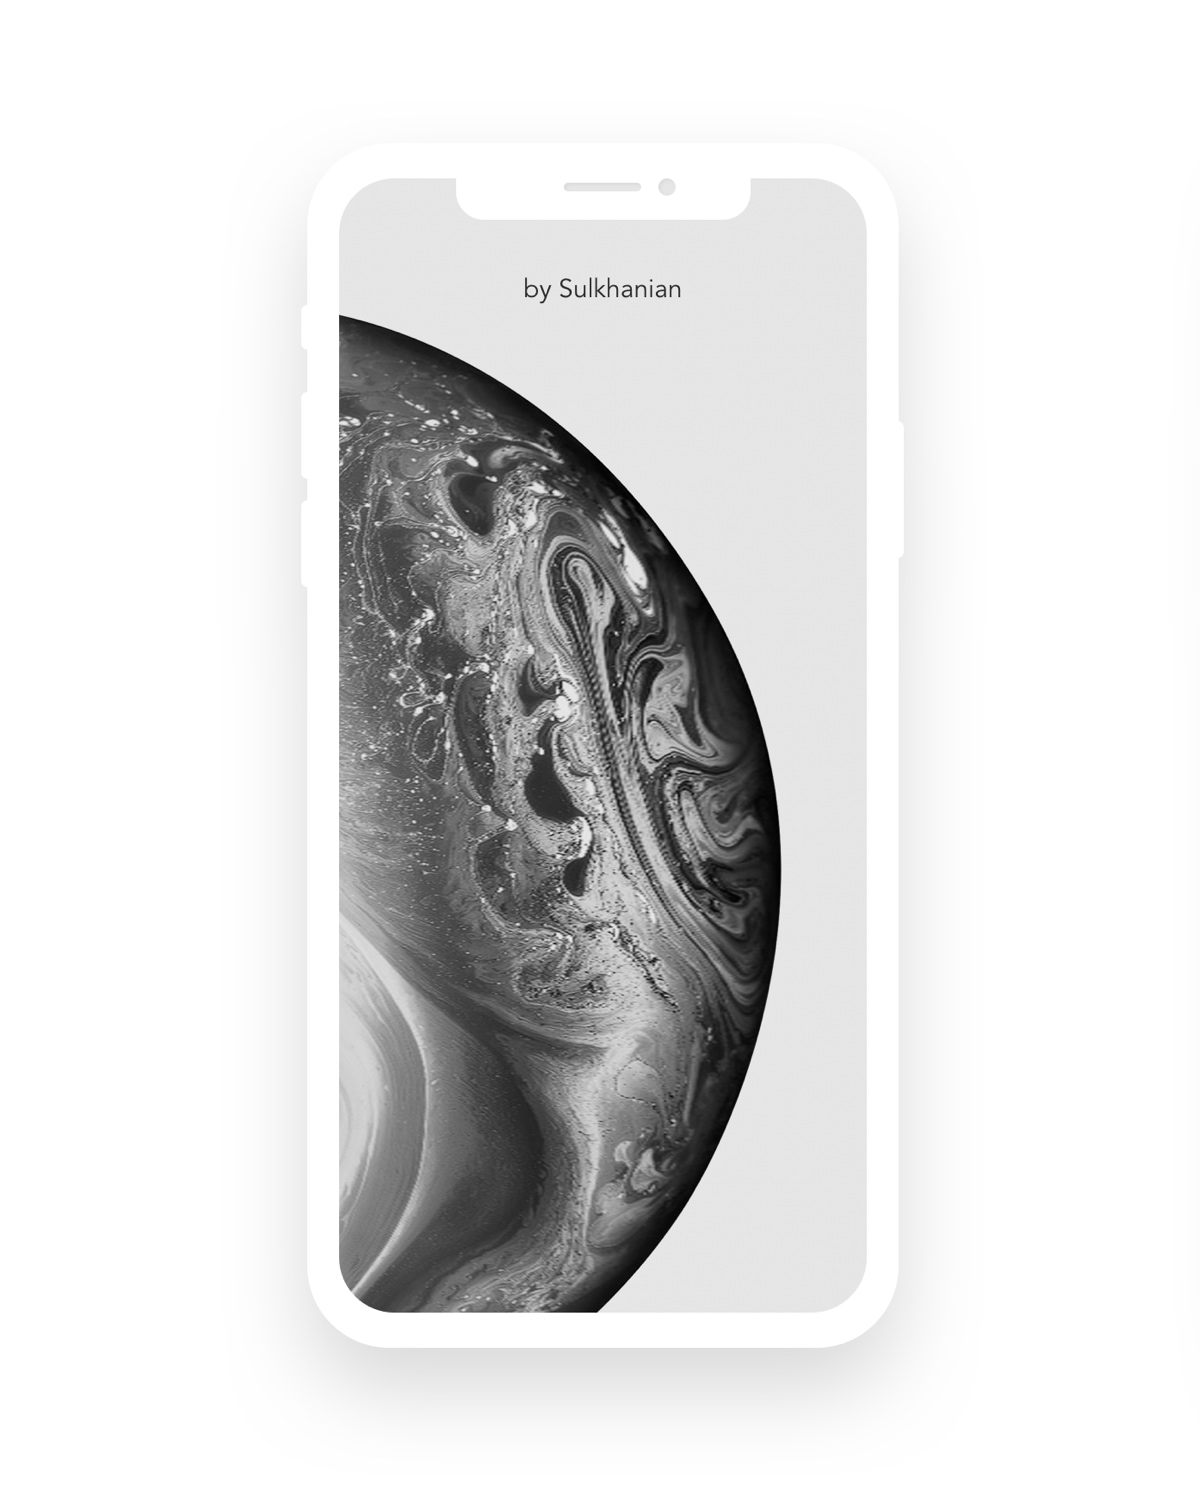 iPhone XS Super Flat Mockup - There is 3 versions: white, dark gray and dark blue